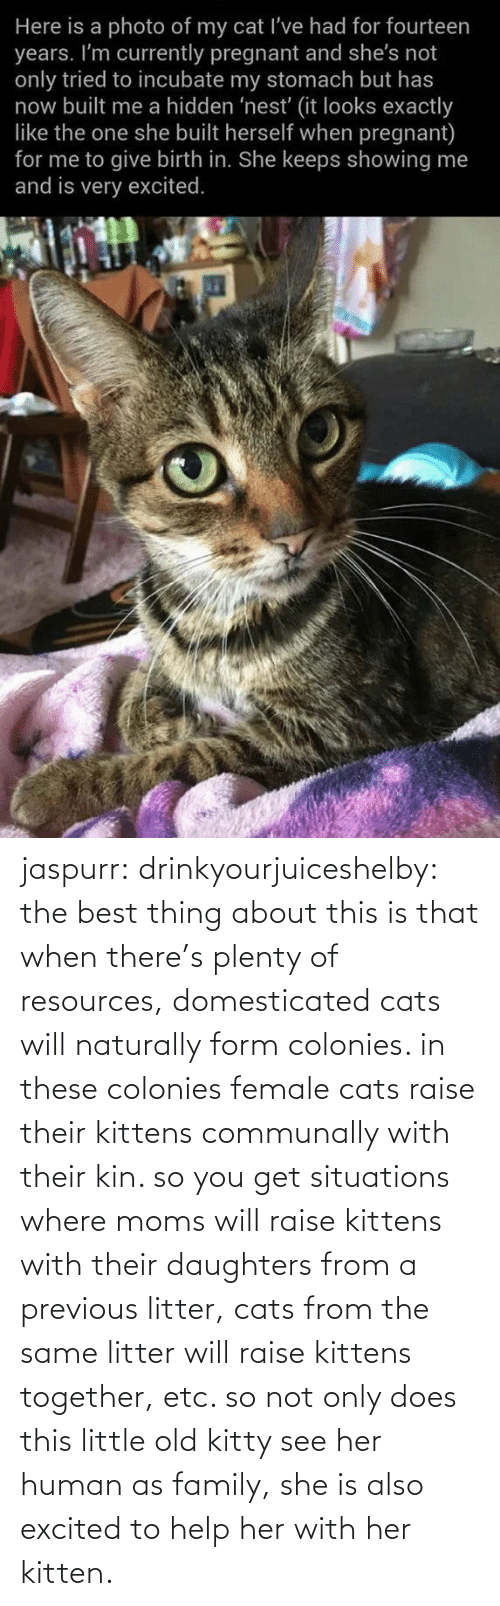 she: jaspurr:  drinkyourjuiceshelby:    the best thing about this is that when there's plenty of resources, domesticated cats will naturally form colonies. in these colonies female cats raise their kittens communally with their kin. so you get situations where moms will raise kittens with their daughters from a previous litter, cats from the same litter will raise kittens together, etc. so not only does this little old kitty see her human as family, she is also excited to help her with her kitten.